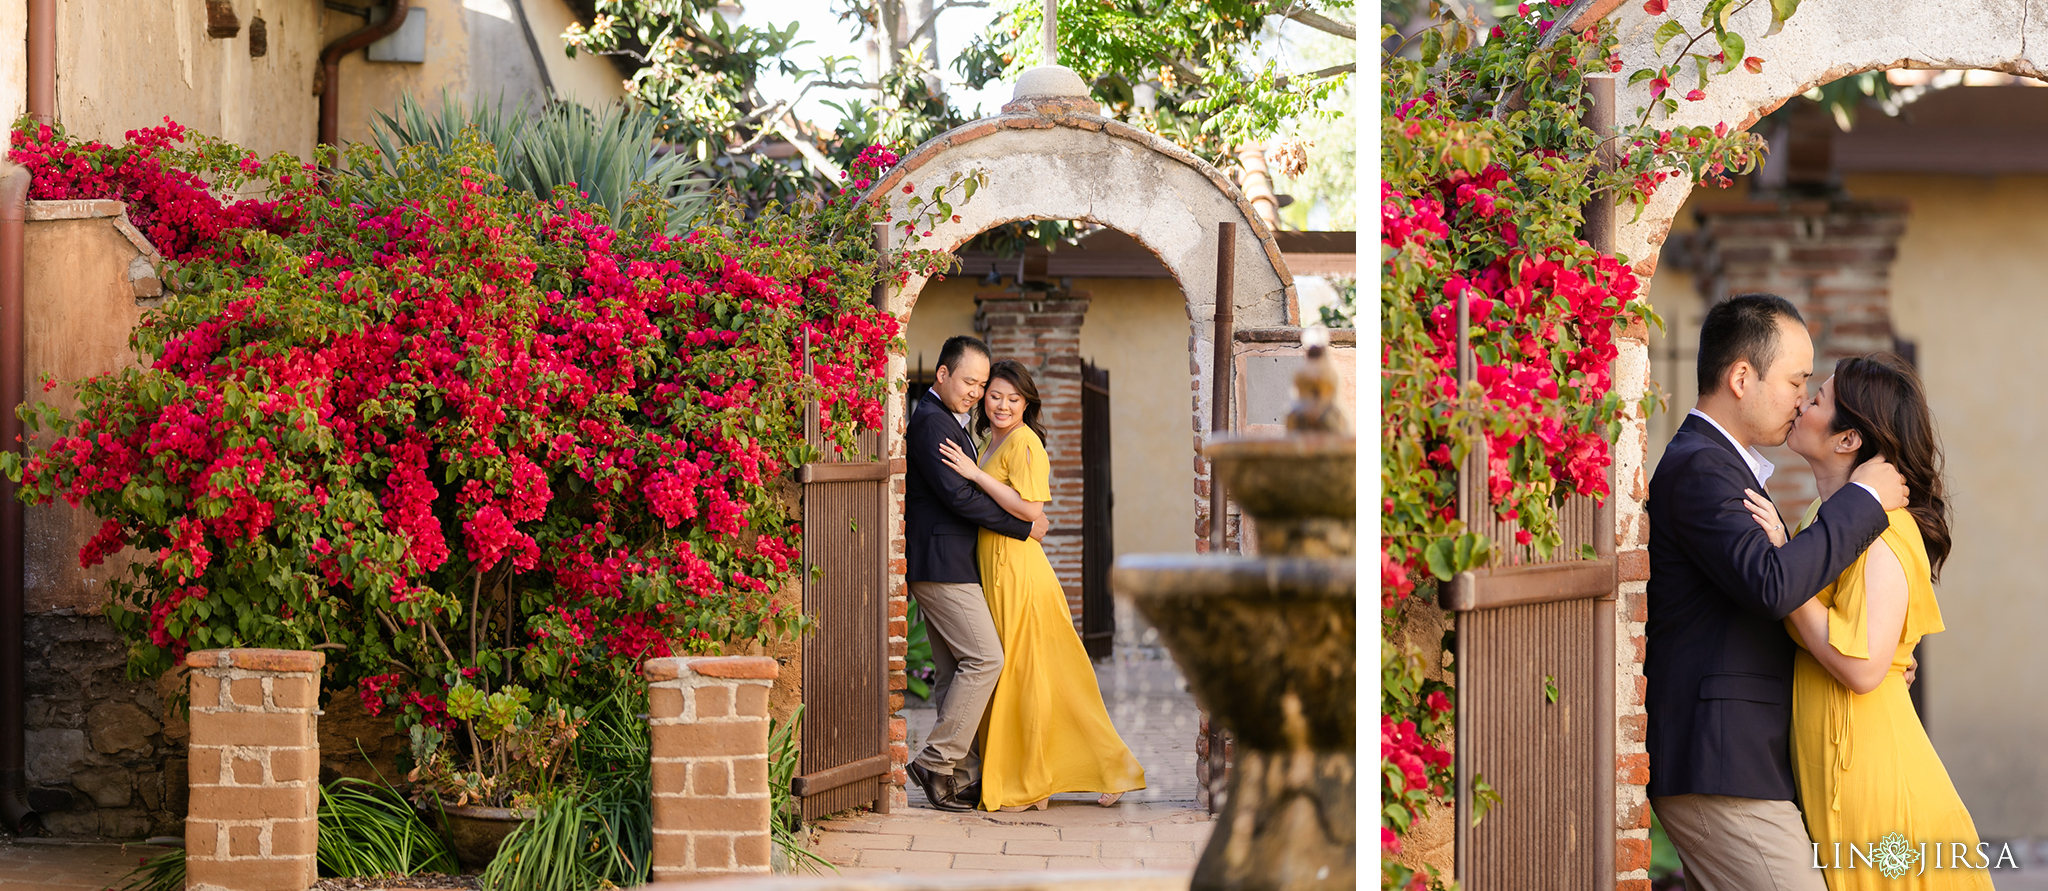 07 Mission San Juan Capistrano Engagement Photography